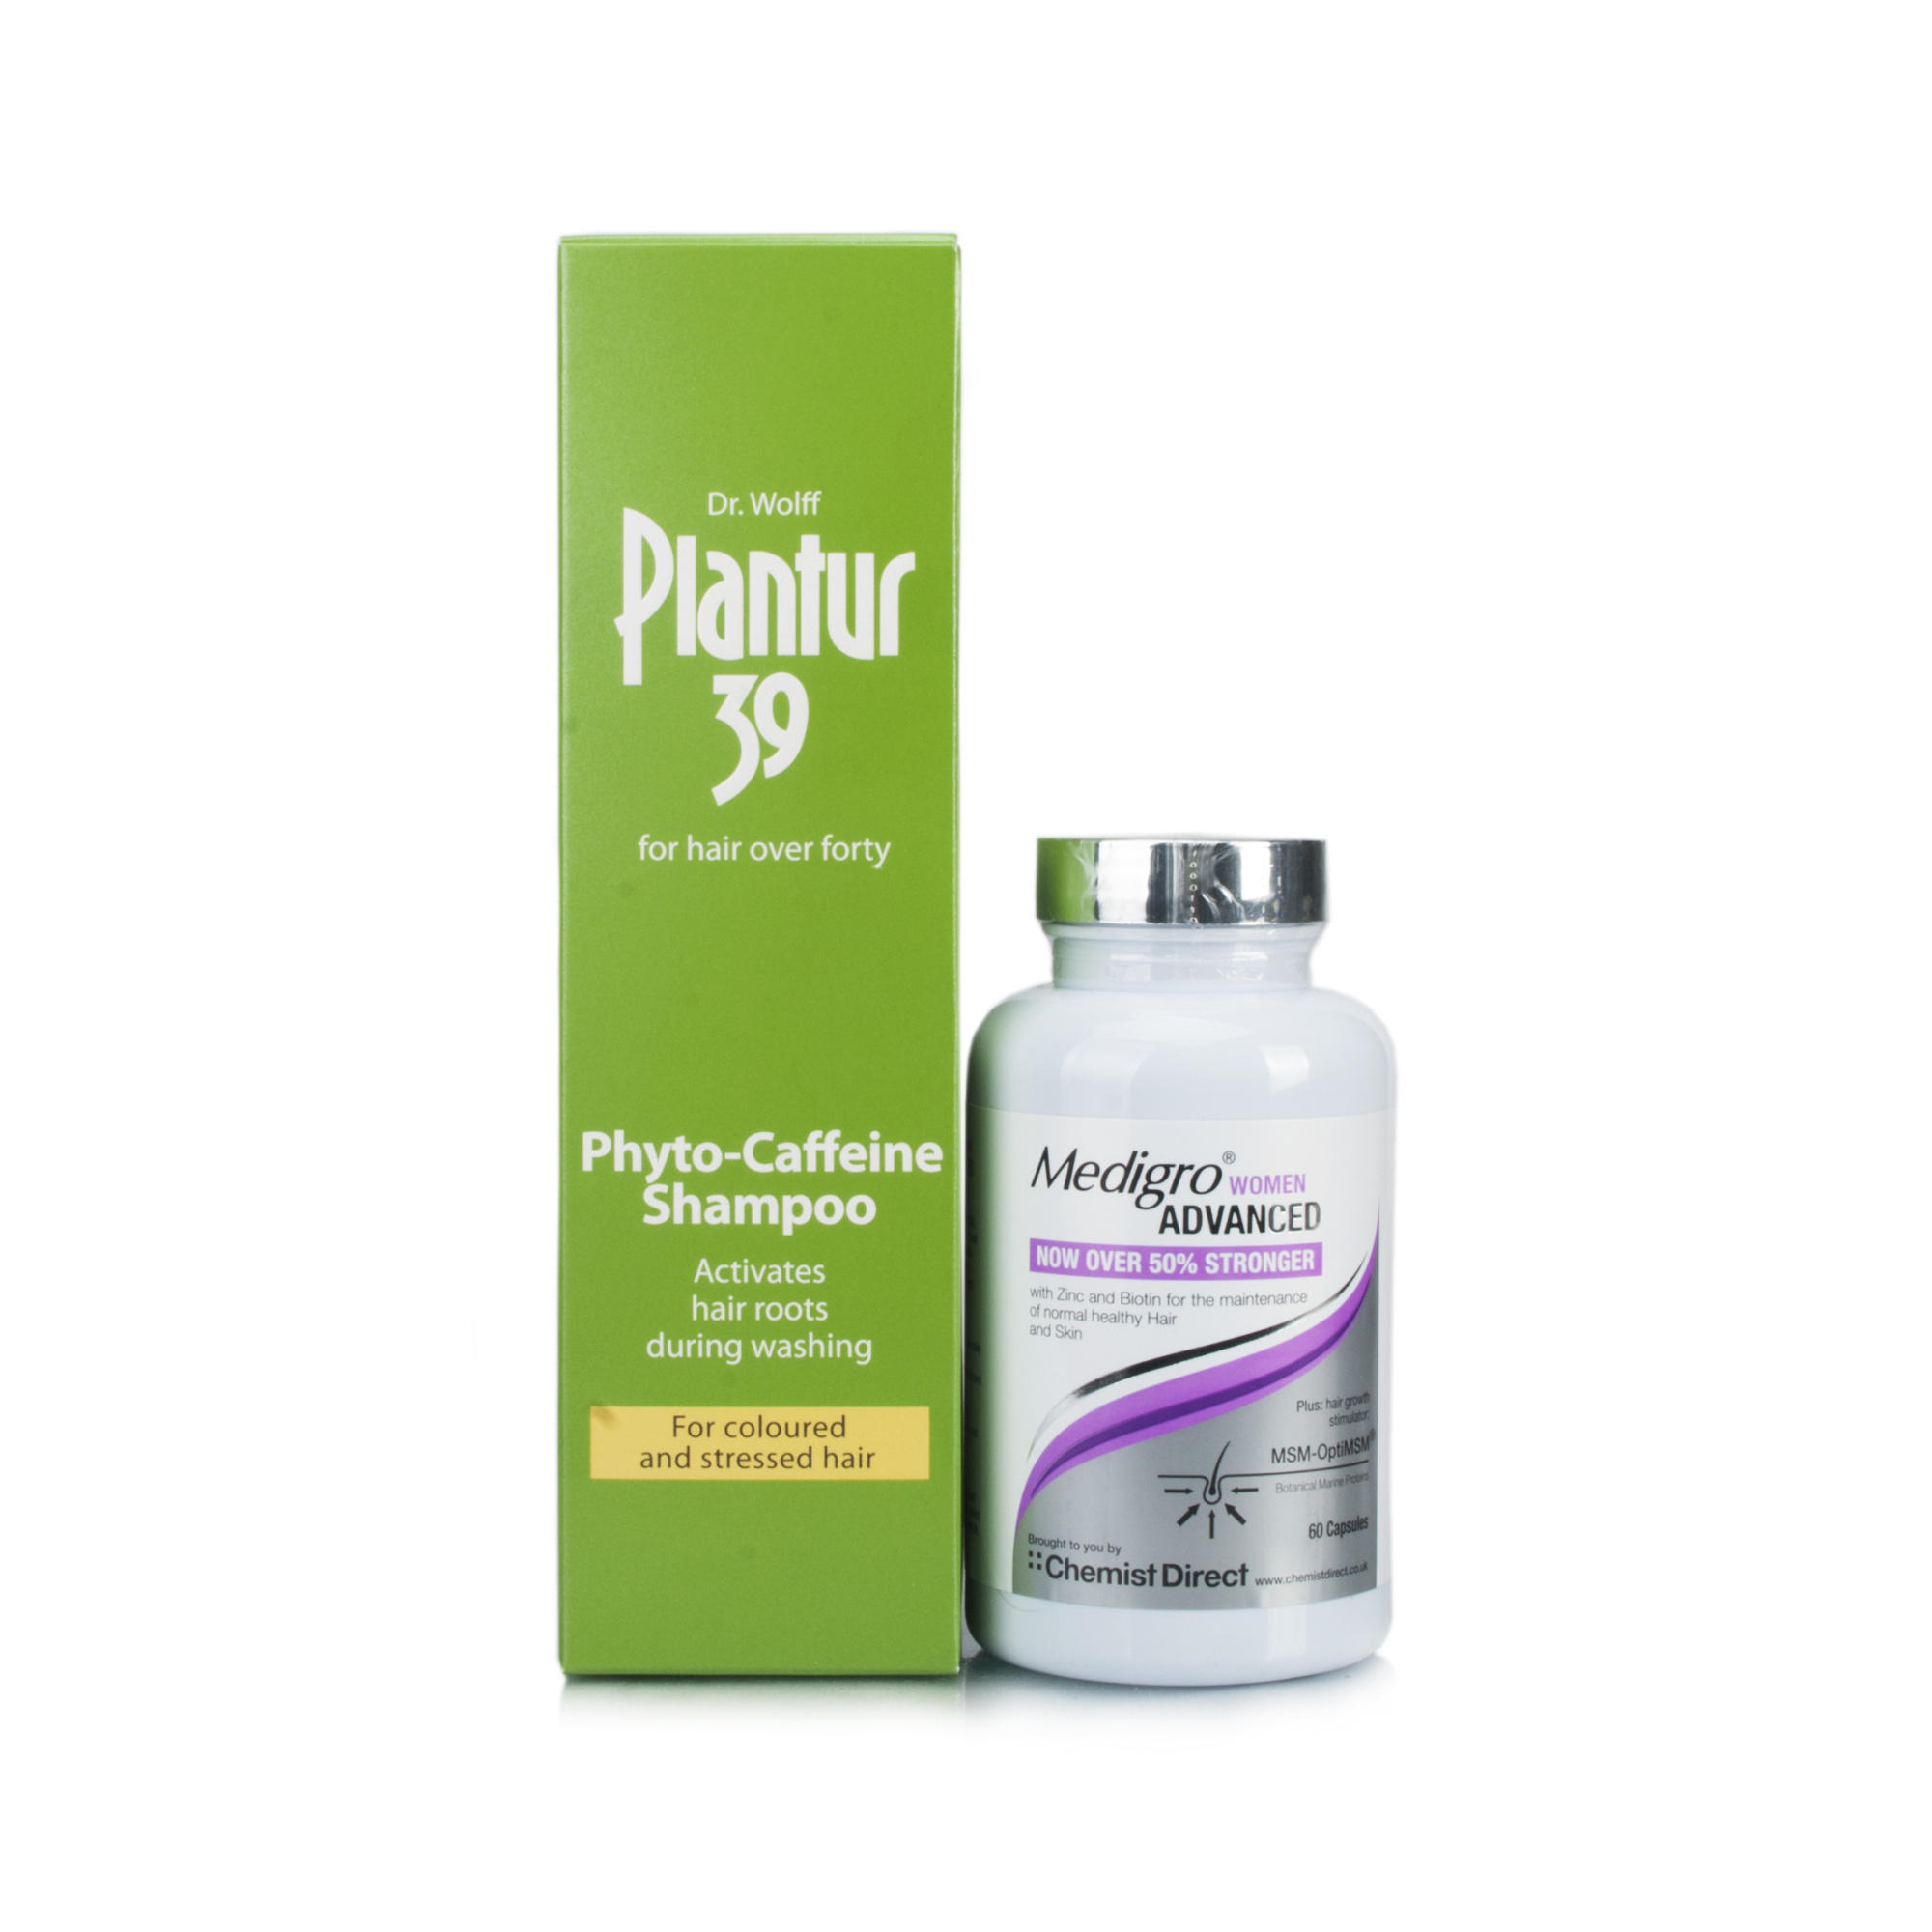 Plantur 39 Caffeine Shampoo For Coloured Hair & Medigro Advanced Supplement for Women Pack